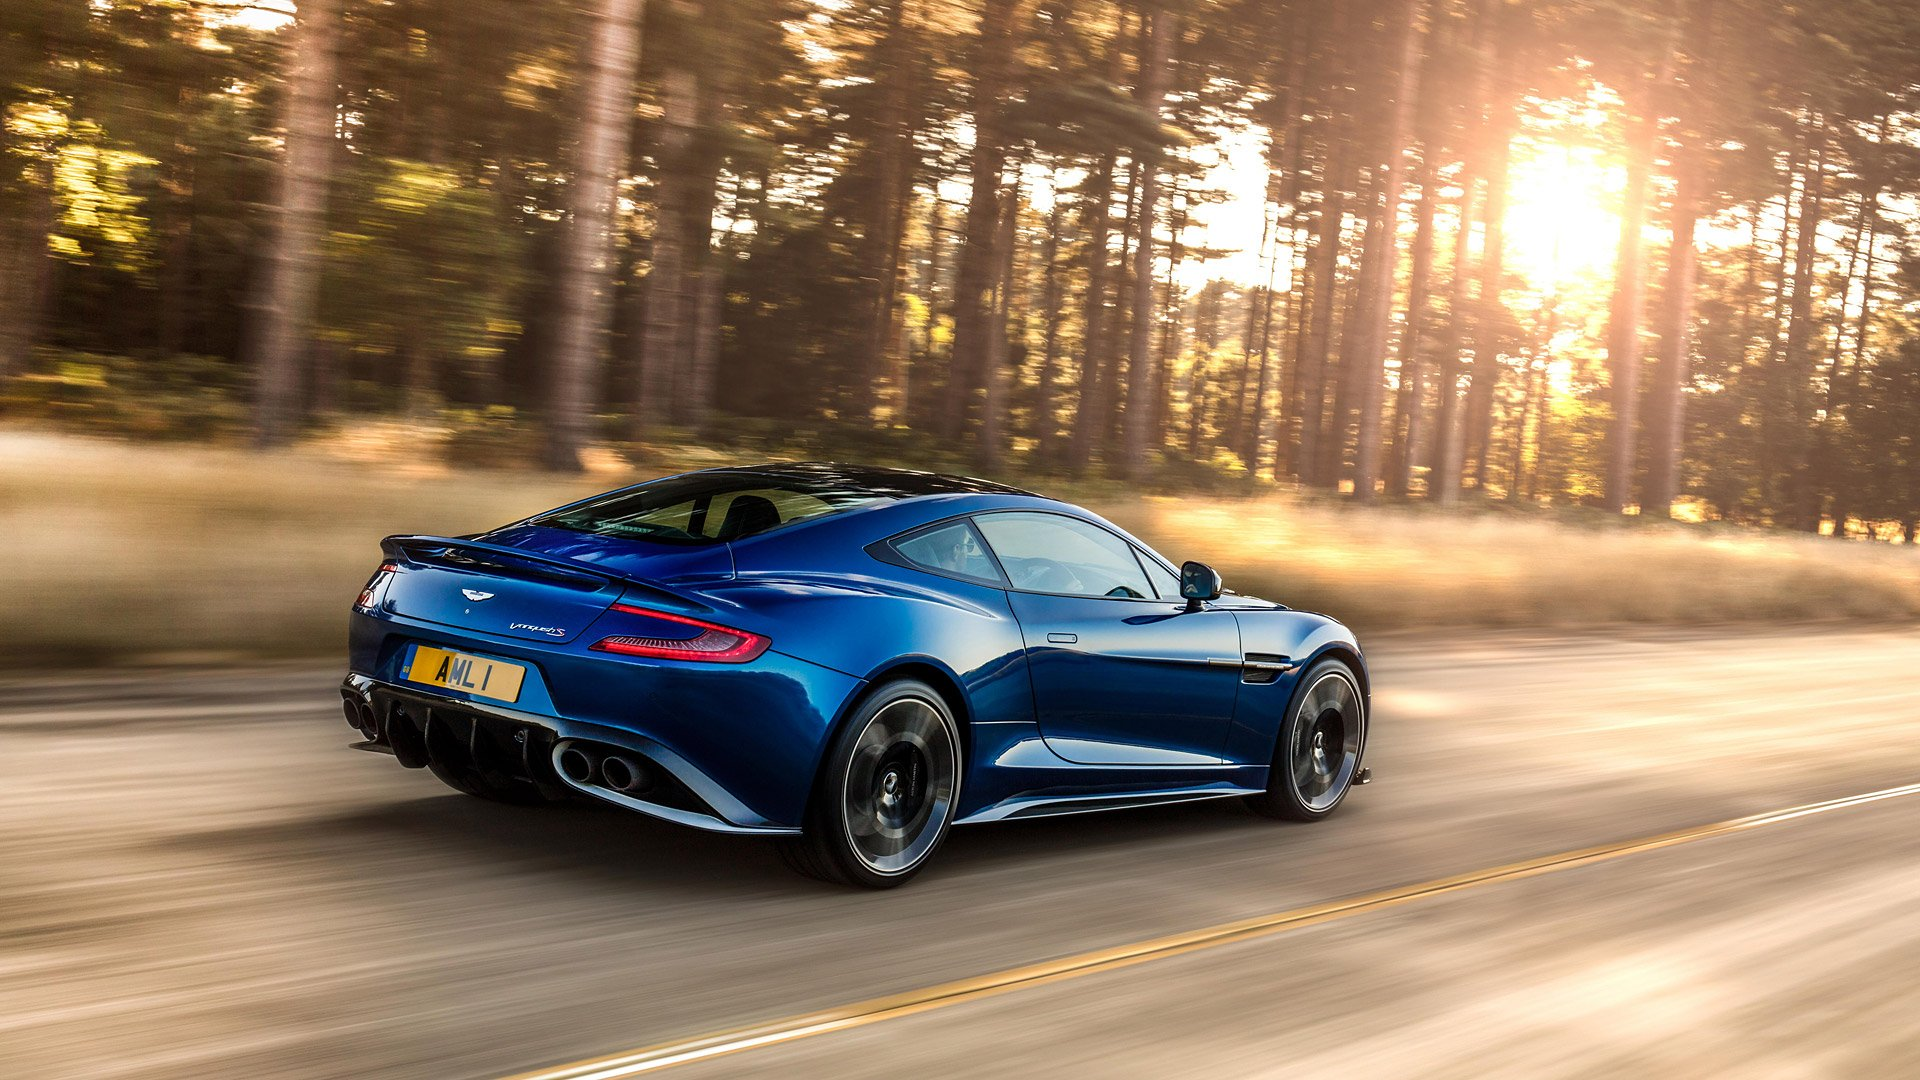 Aston Martin Vanquish Wallpaper Image Group 47 1920x1080